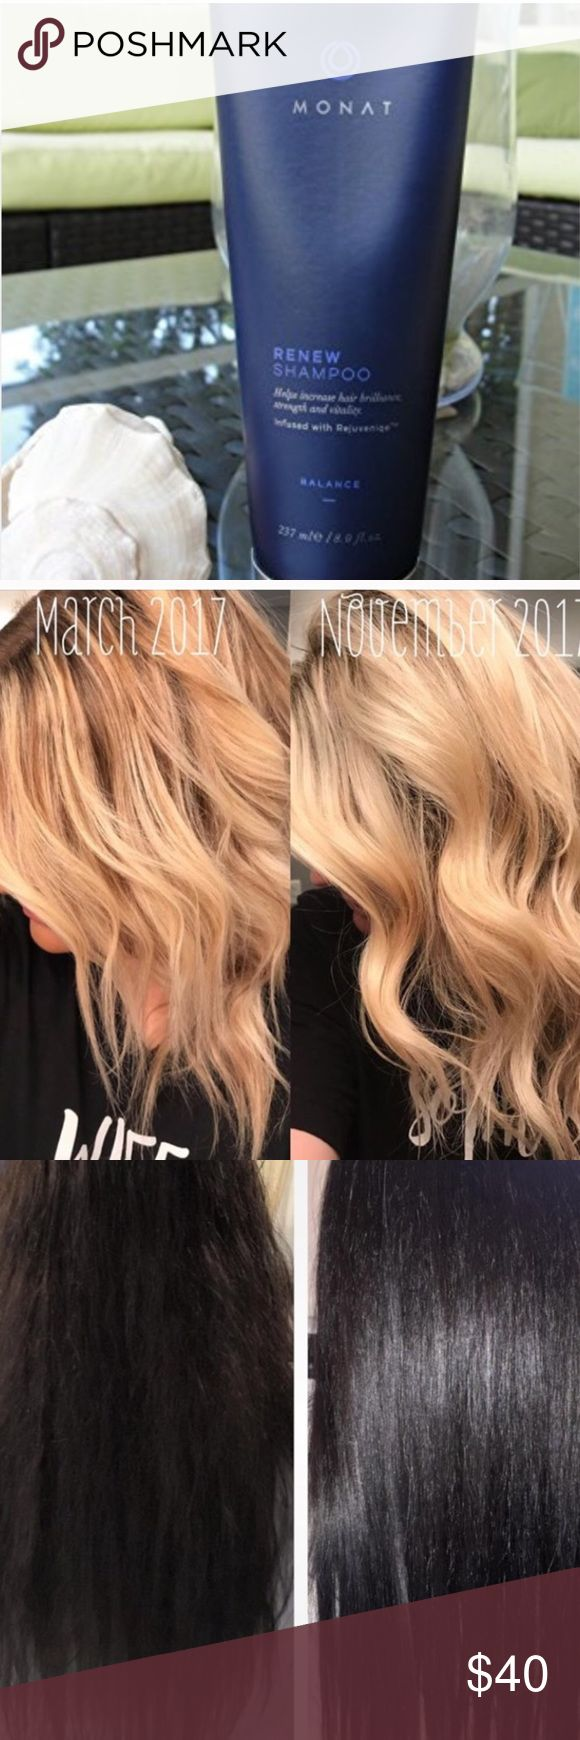 MONAT Renew Hydrating Shampoo + FREE Samples New full size. Hydrating shampoo. Infused with Rejuvenique Oil. A truly transformative shampoo!  Comes with 2 free samples of product while supplies last! Monat Makeup